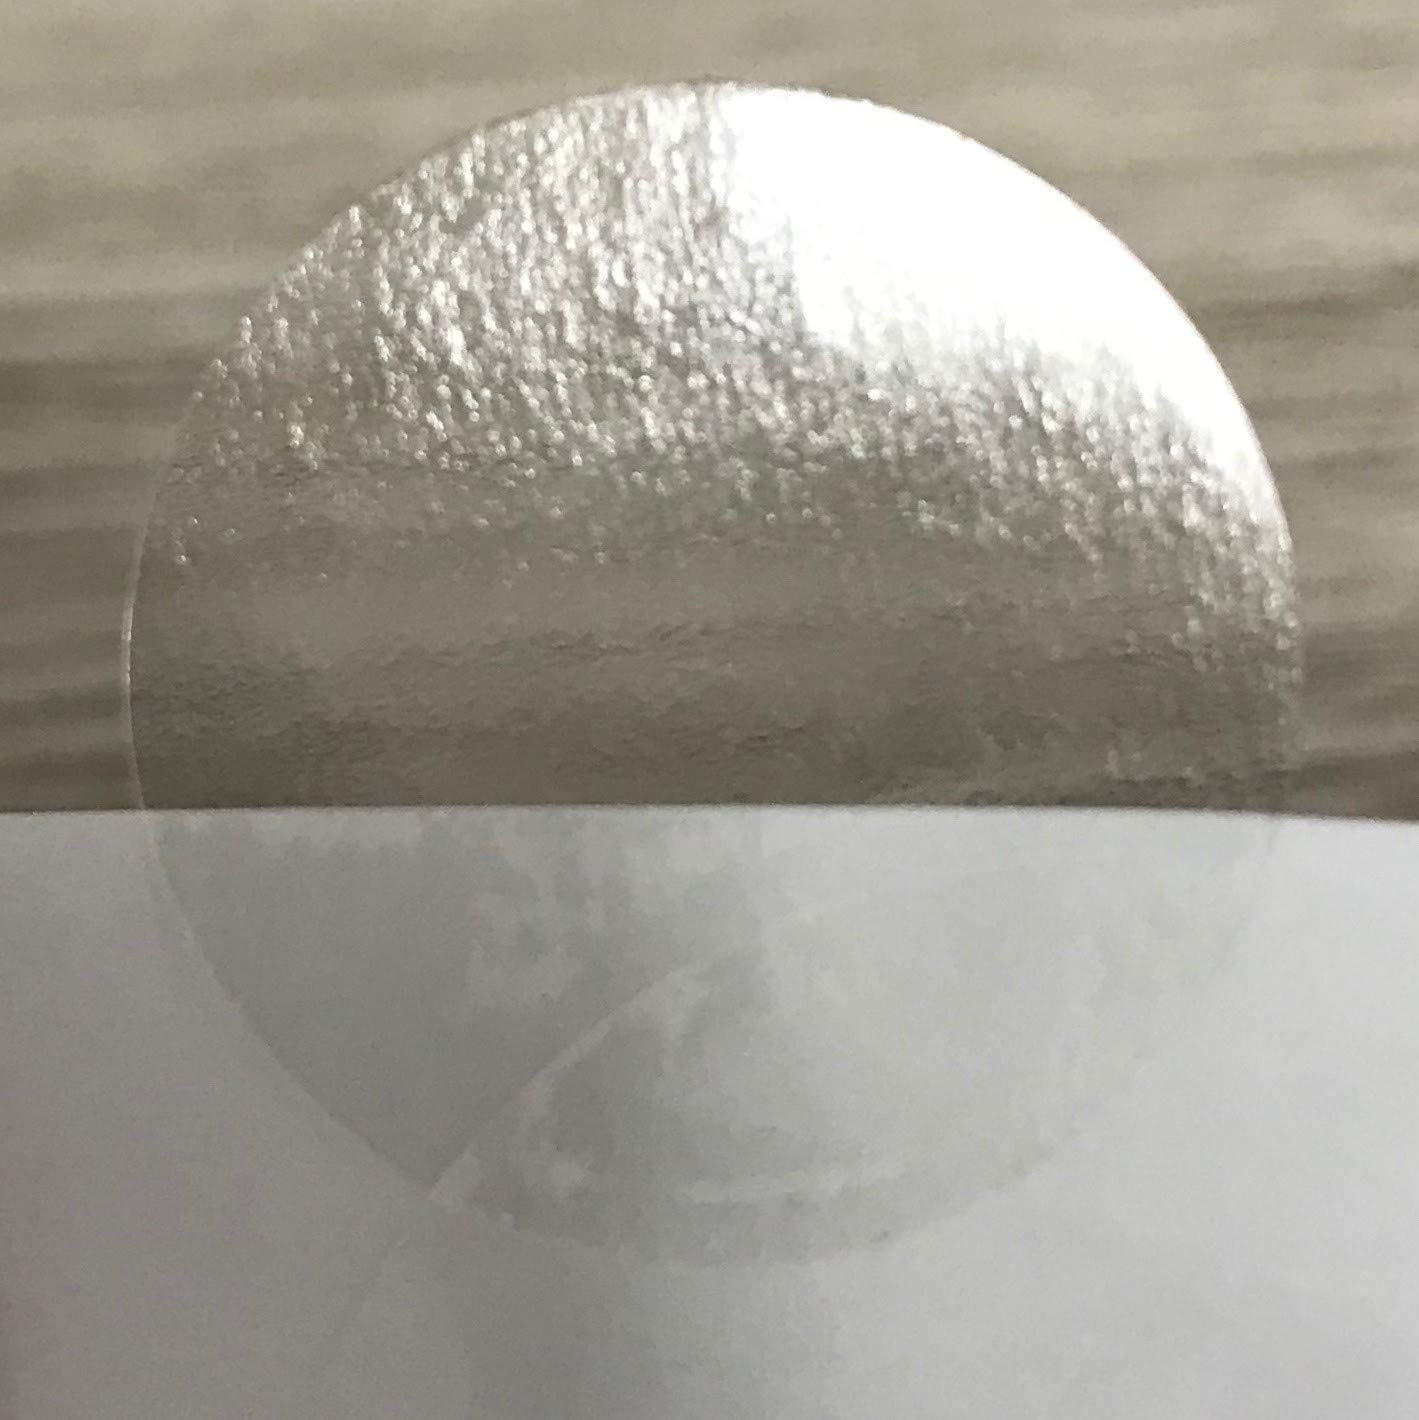 Clear Circle Seal Stickers 1 in Clear Round Labels 1000/roll Great as Envelope Seals, Newsletter mailing Seals, Clear Circle Labels or Other uses Where Wafer Seals or Clear Circle Stickers are Needed